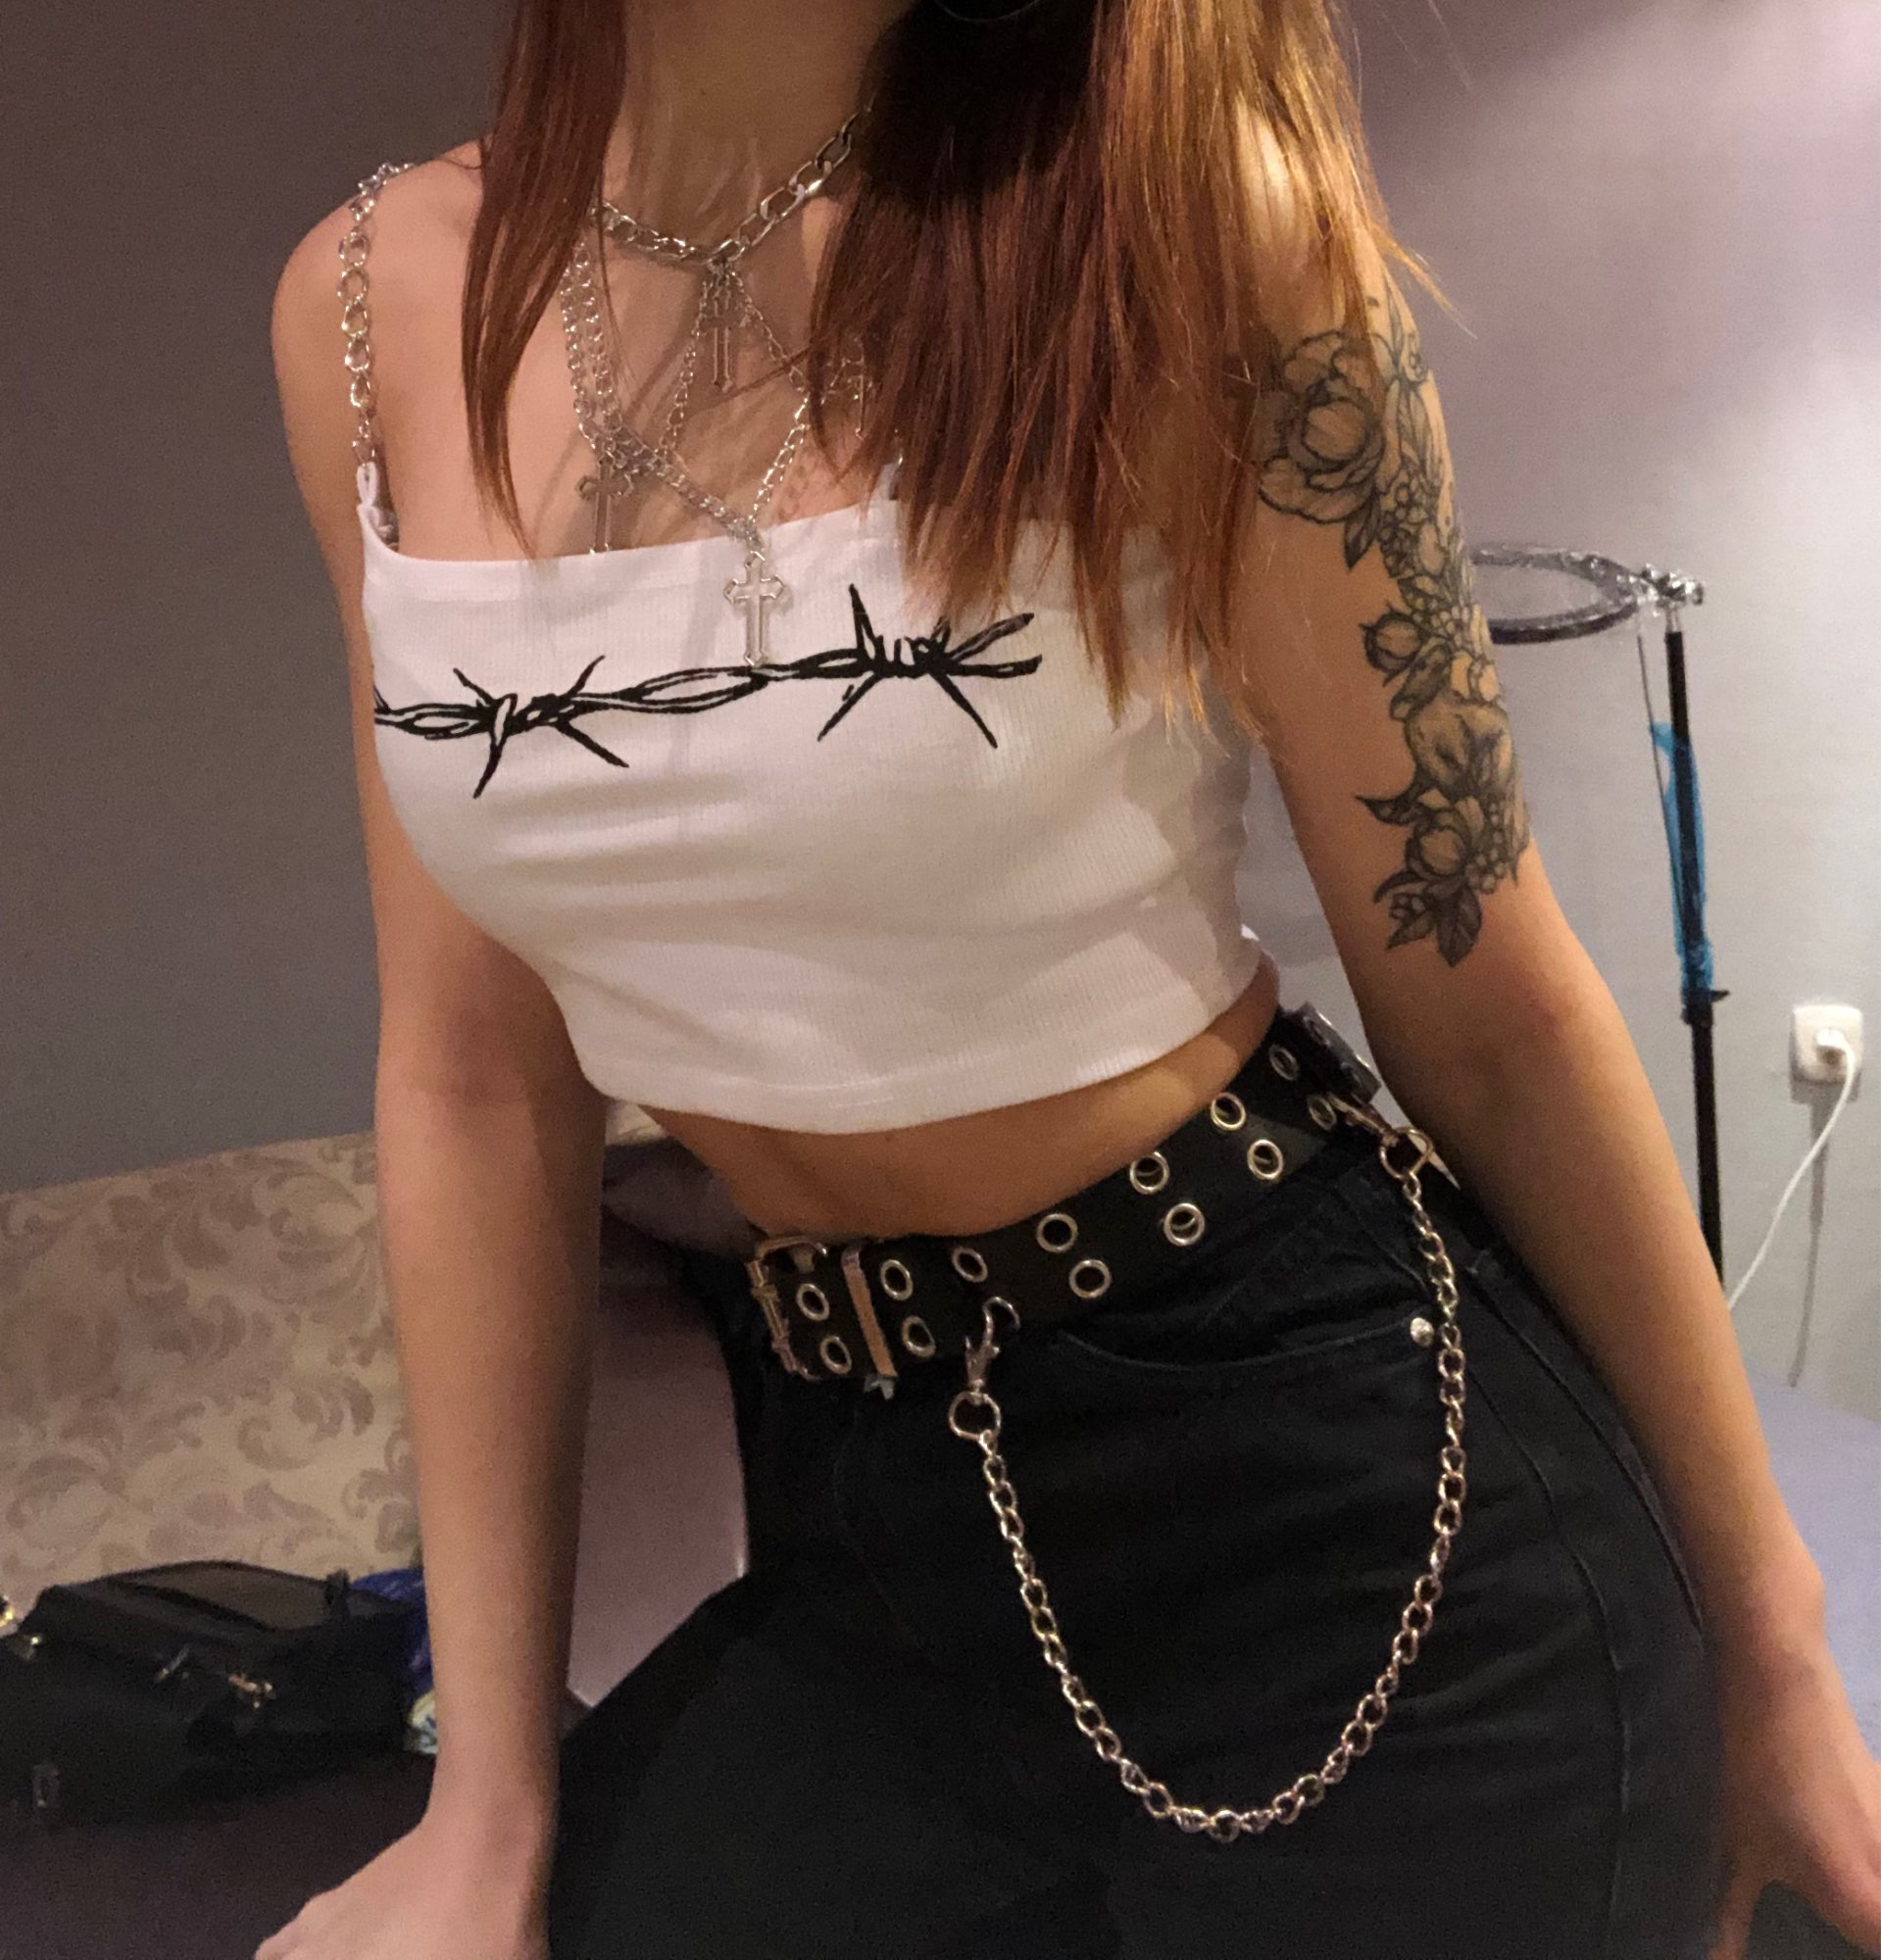 E-girl Crop Top with chain straps and thorns print photo review